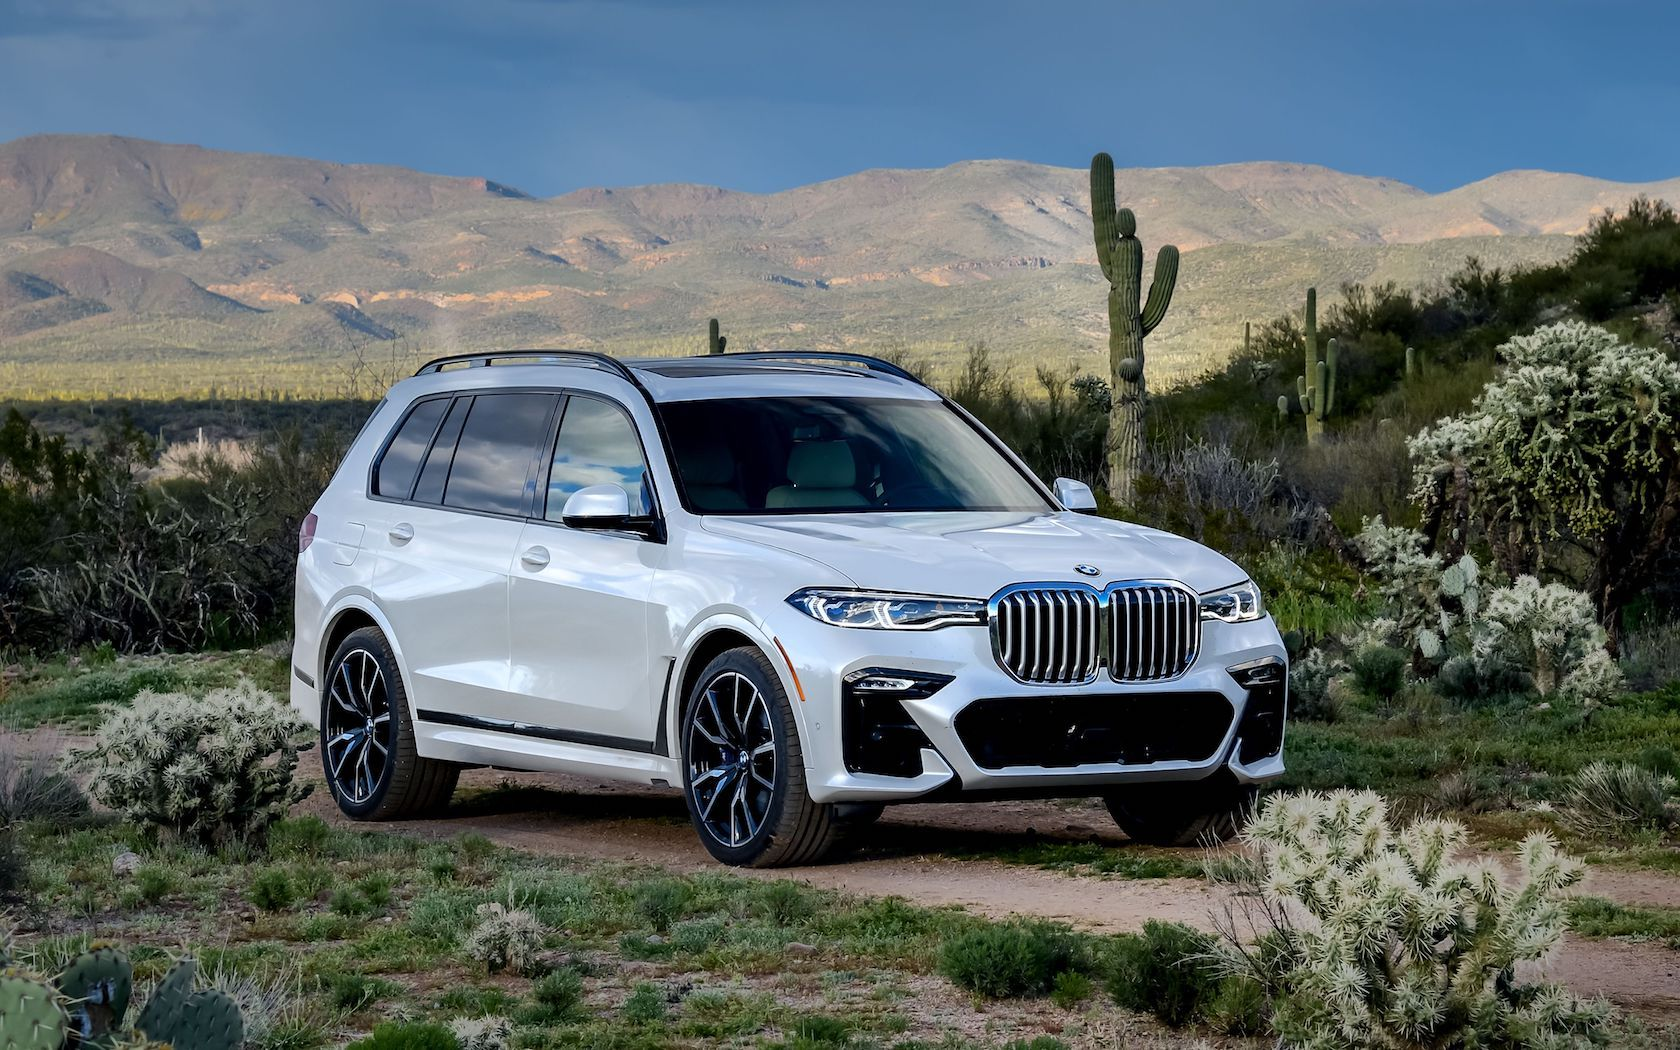 Seat Weiß 2019 Bmw X7 First Drive Unexpected Agility In A 7 Seat Luxury Suv